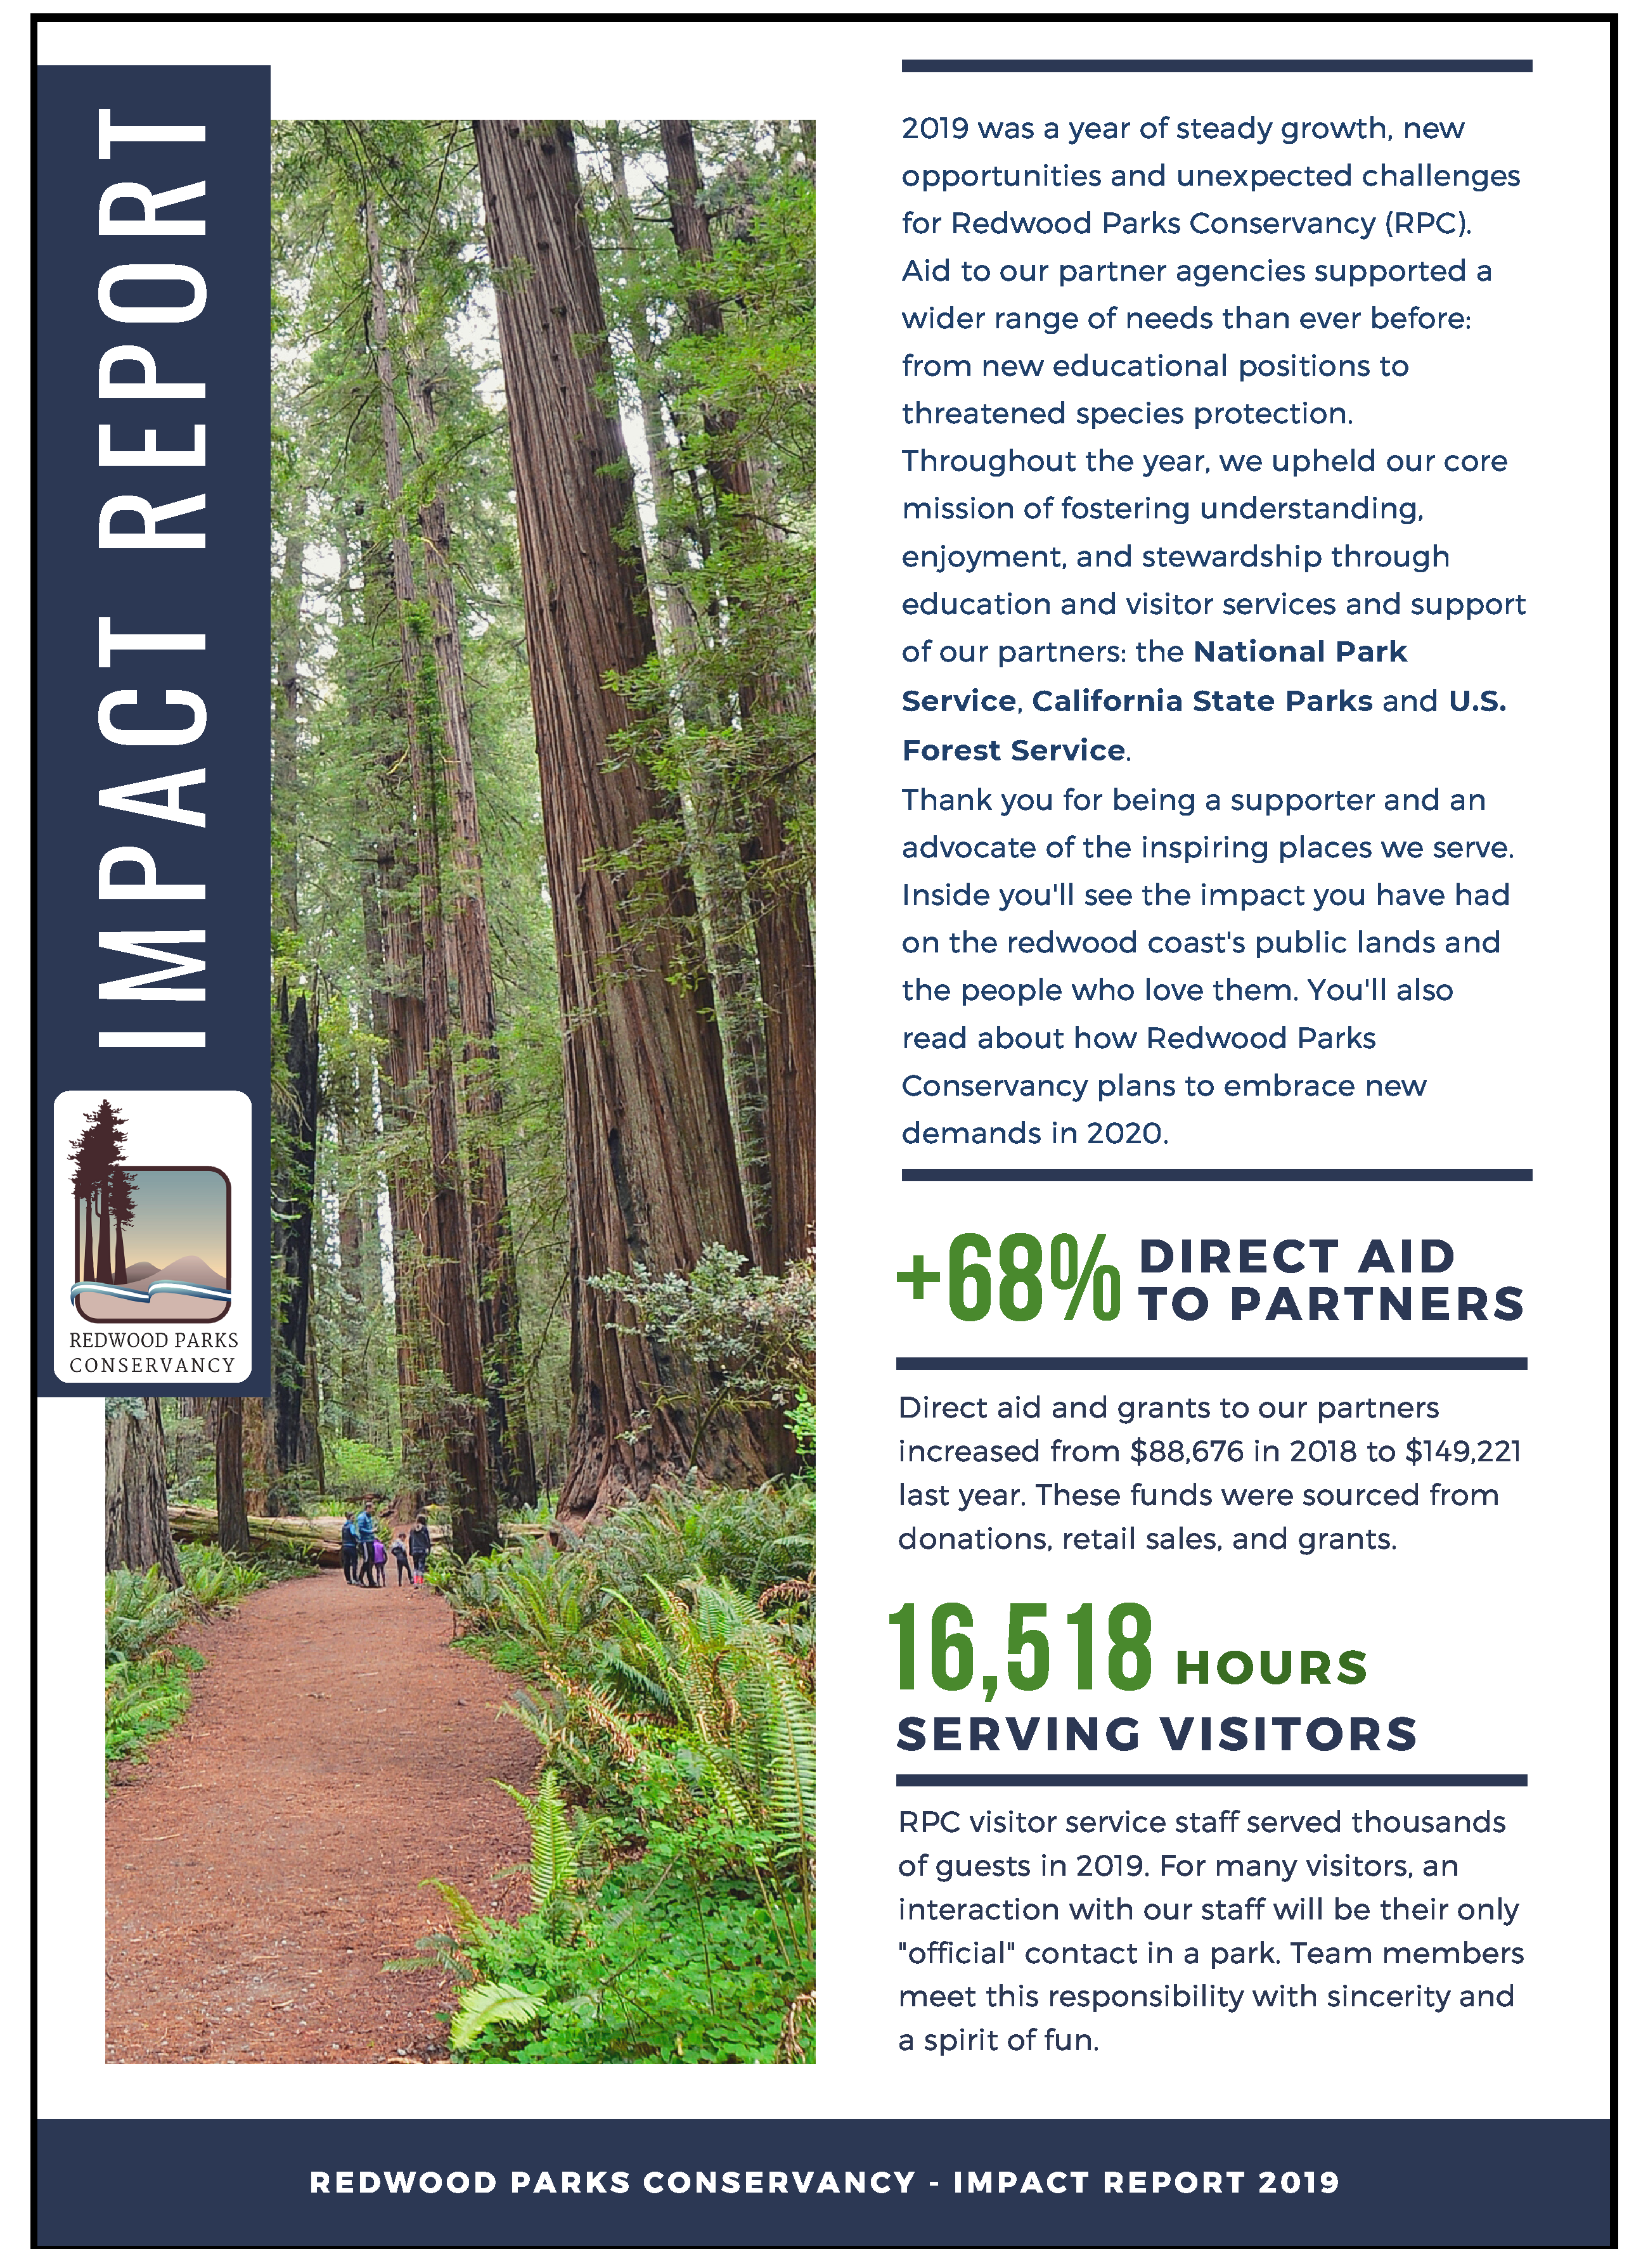 Image of the cover of the Redwood Parks Conservancy Impact Report